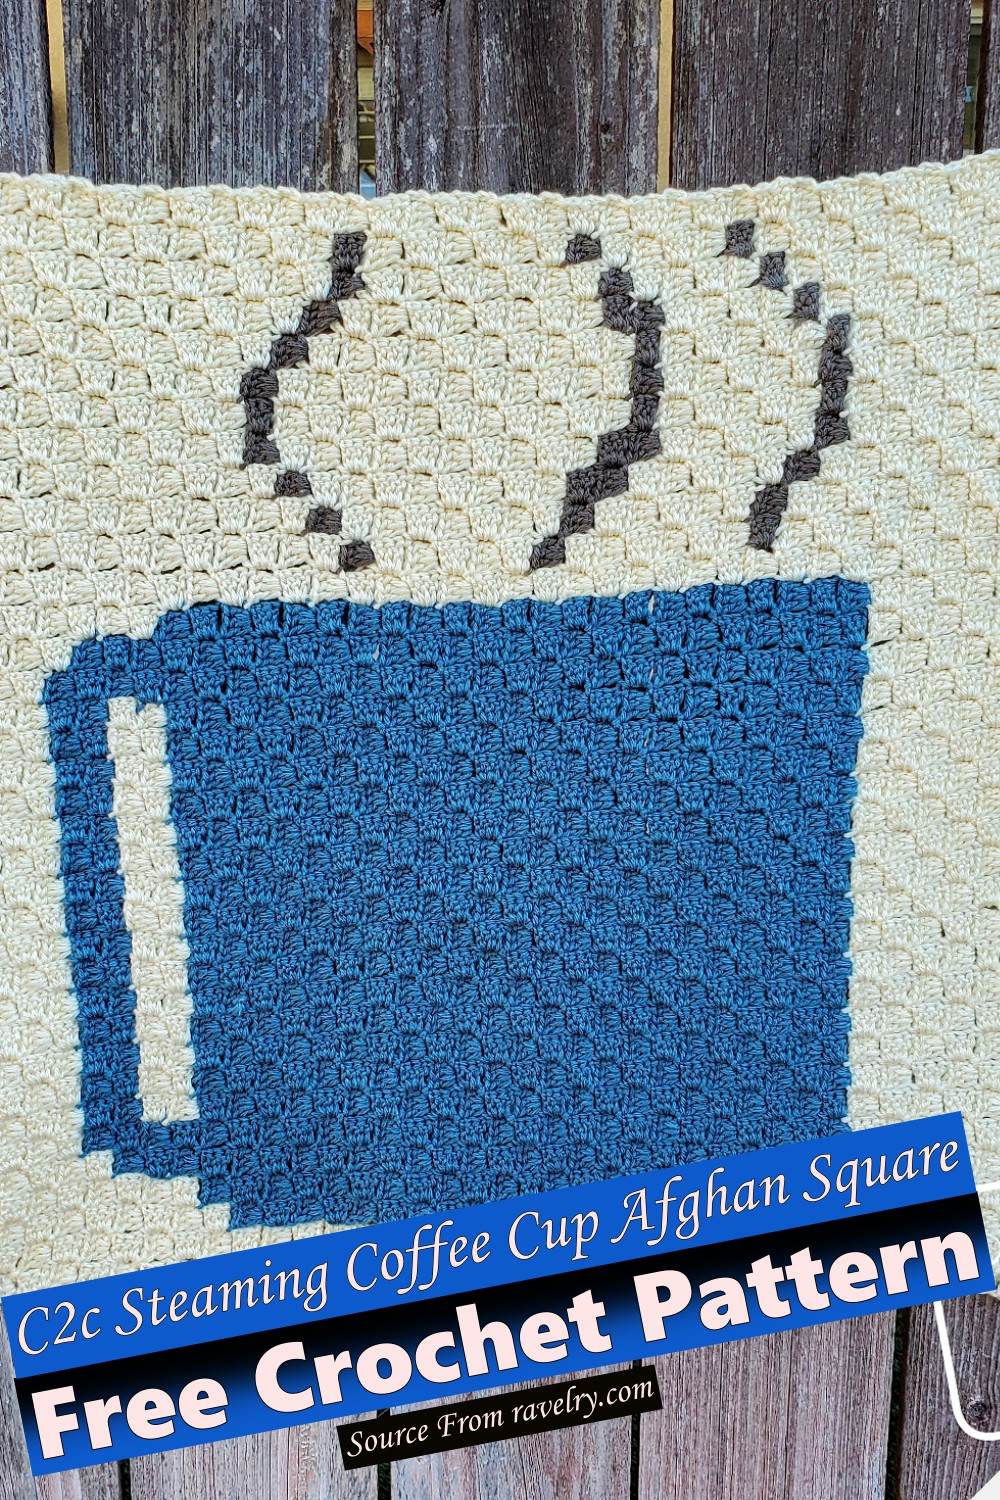 Free Crochet C2c Steaming Coffee Cup Afghan Square Pattern